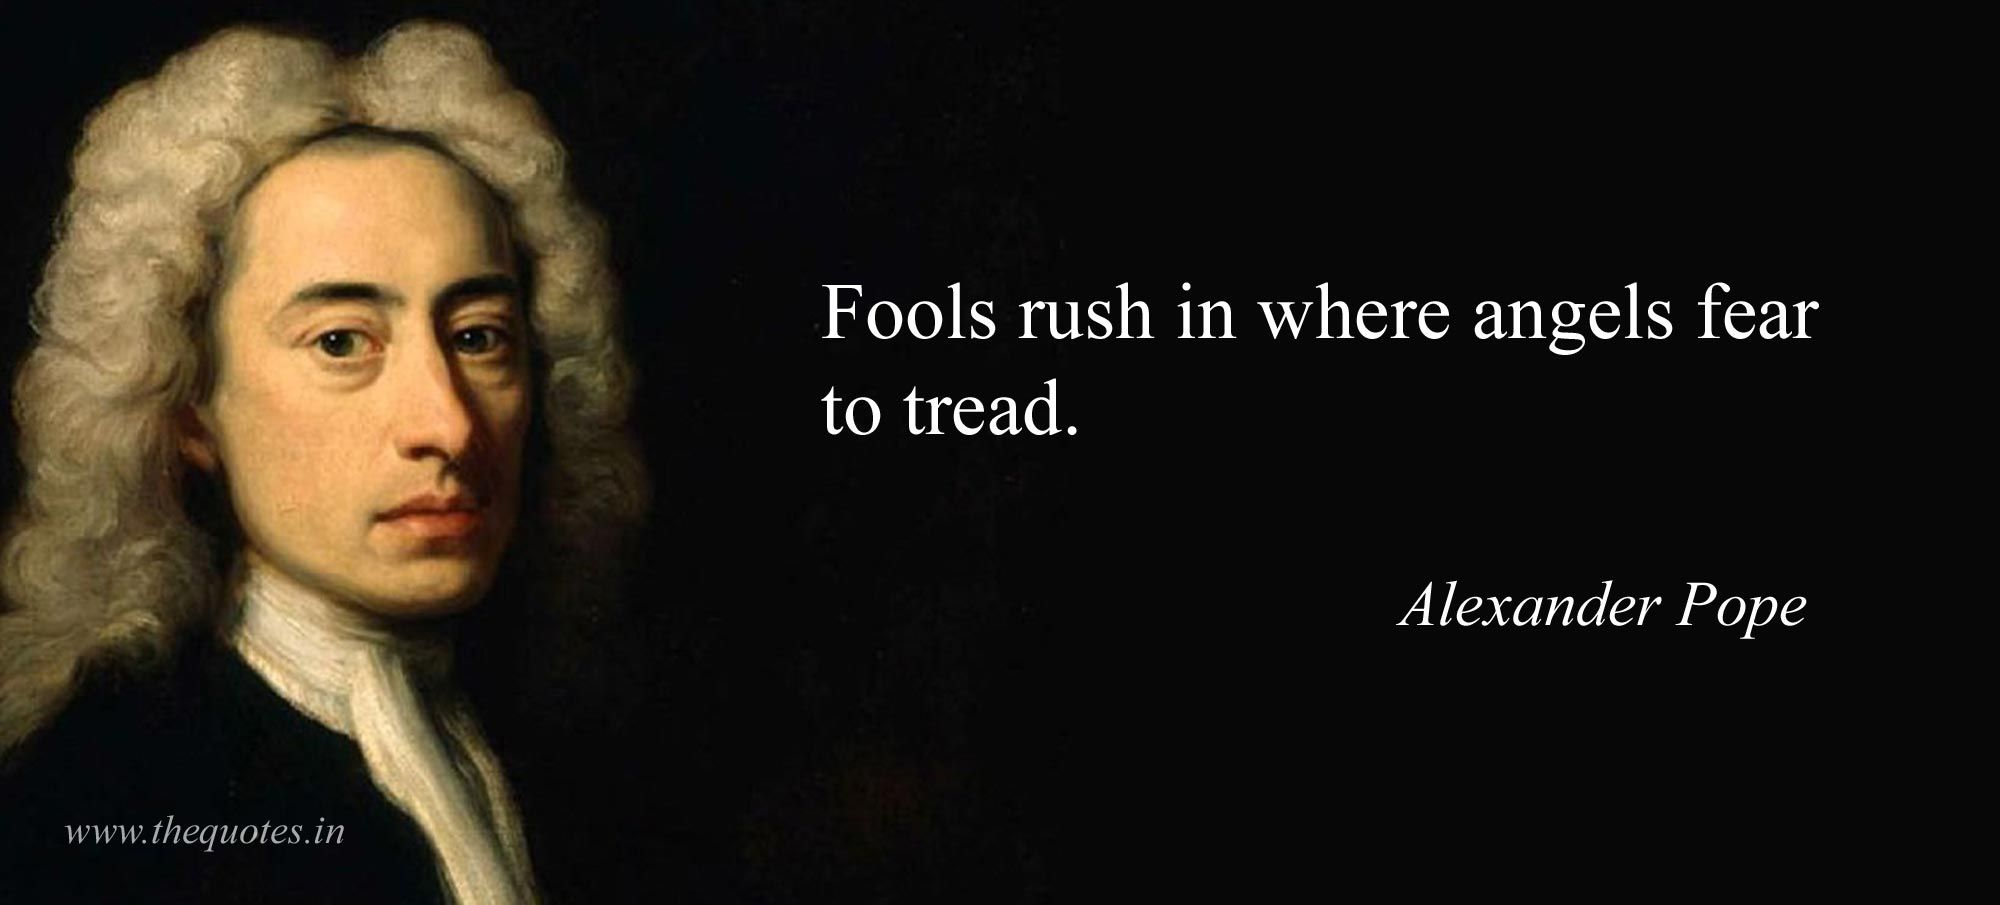 Fools Rush In Where Angels Fear To Tread Alexander Pope Humanity Quotes Alexander Pope Quotes